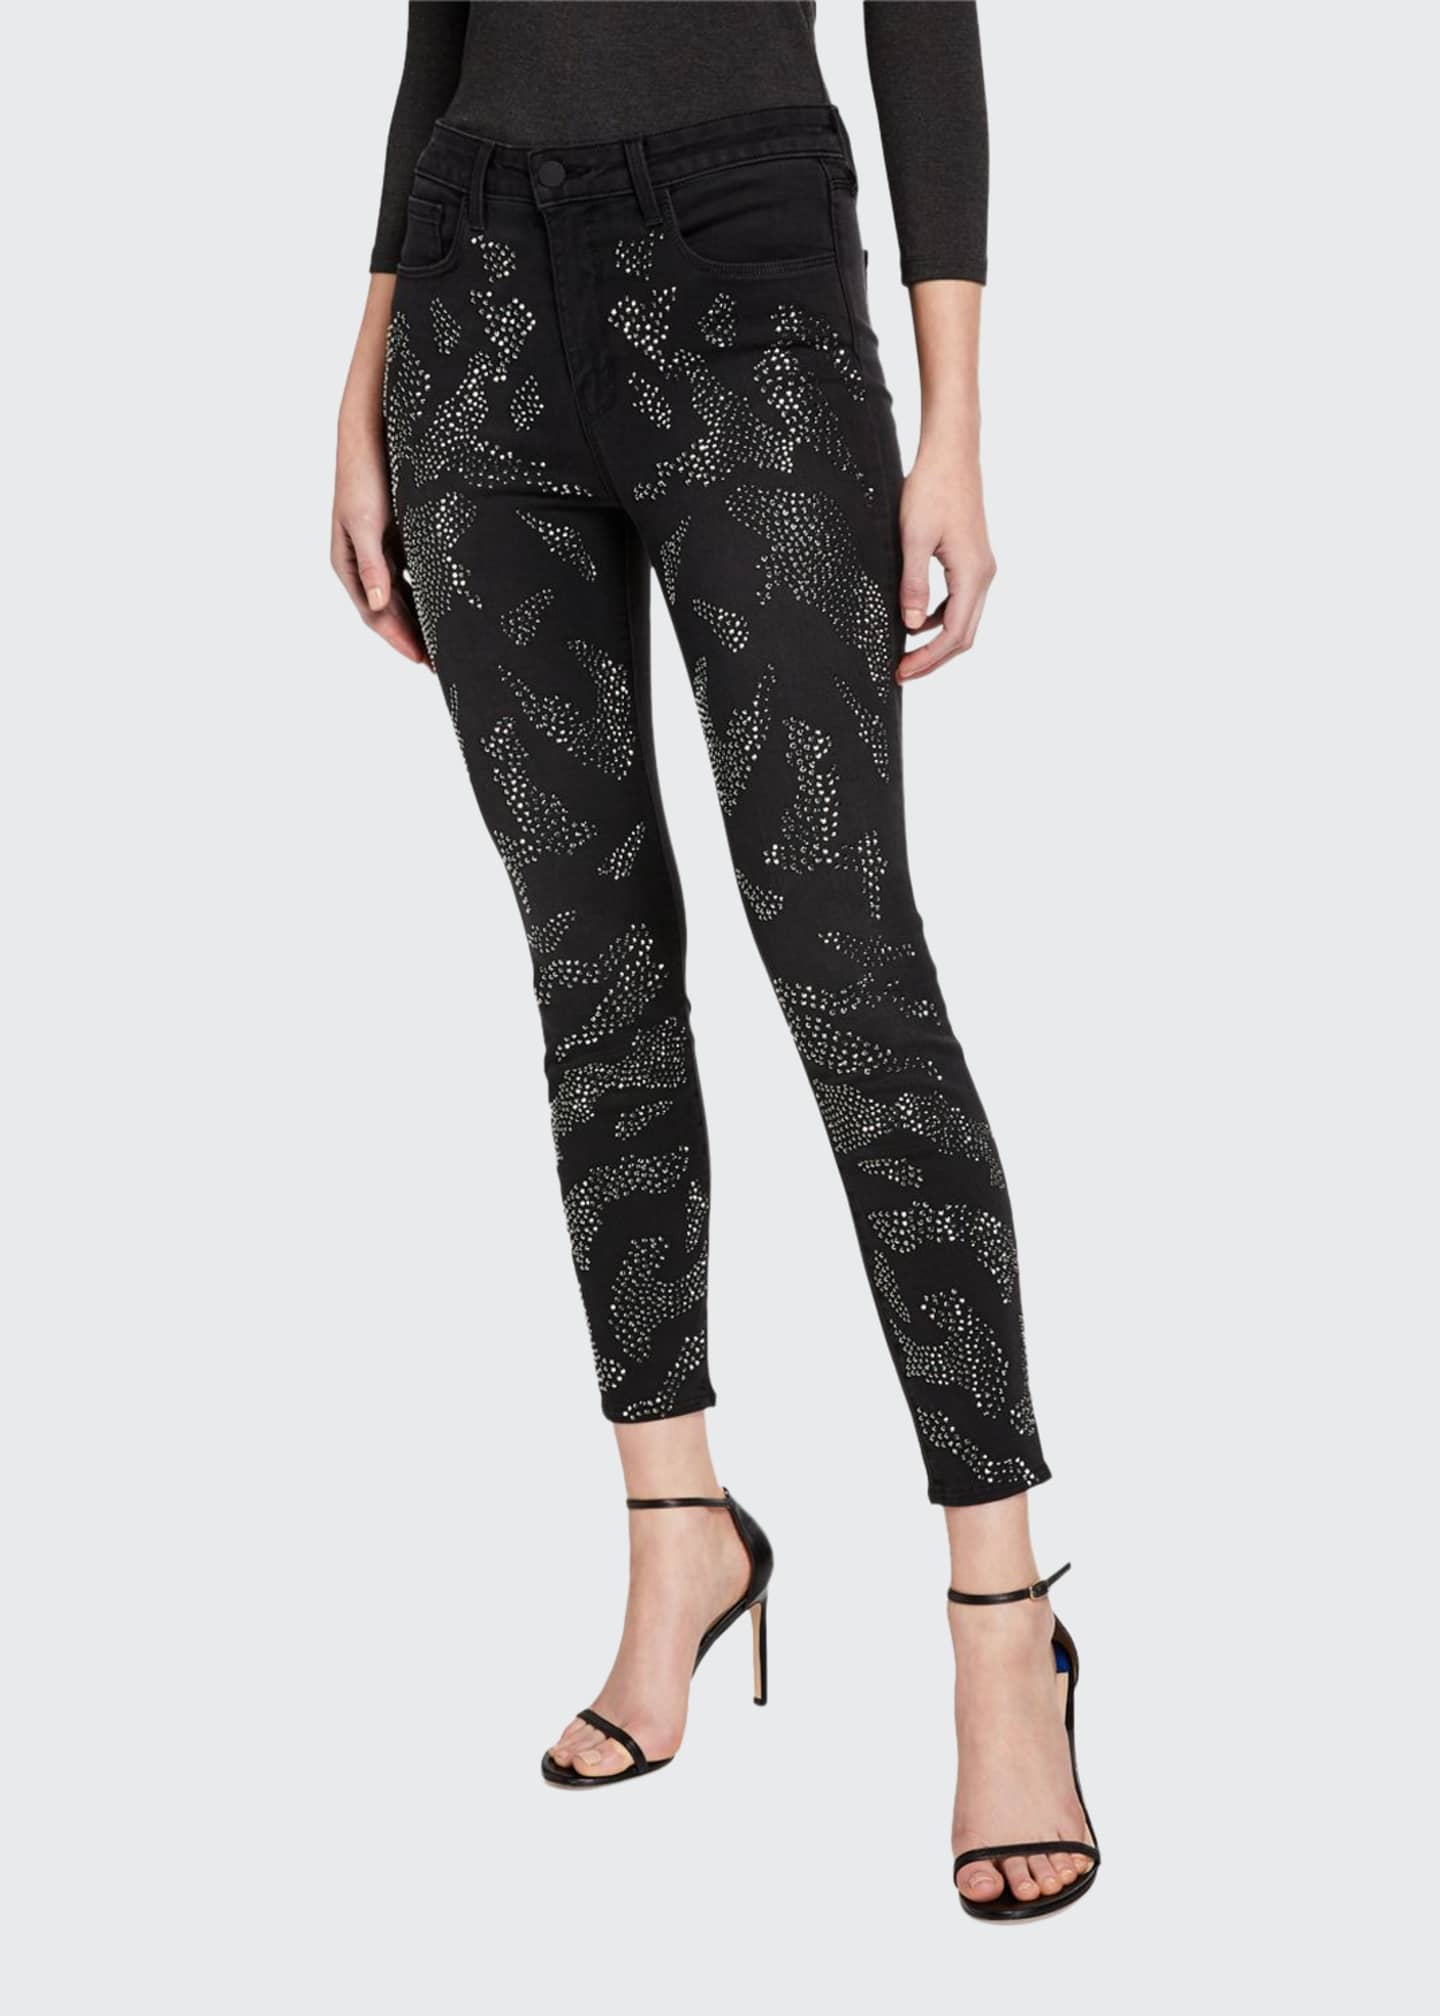 L'Agence Margot High-Rise Skinny Ankle Jeans with Crystal